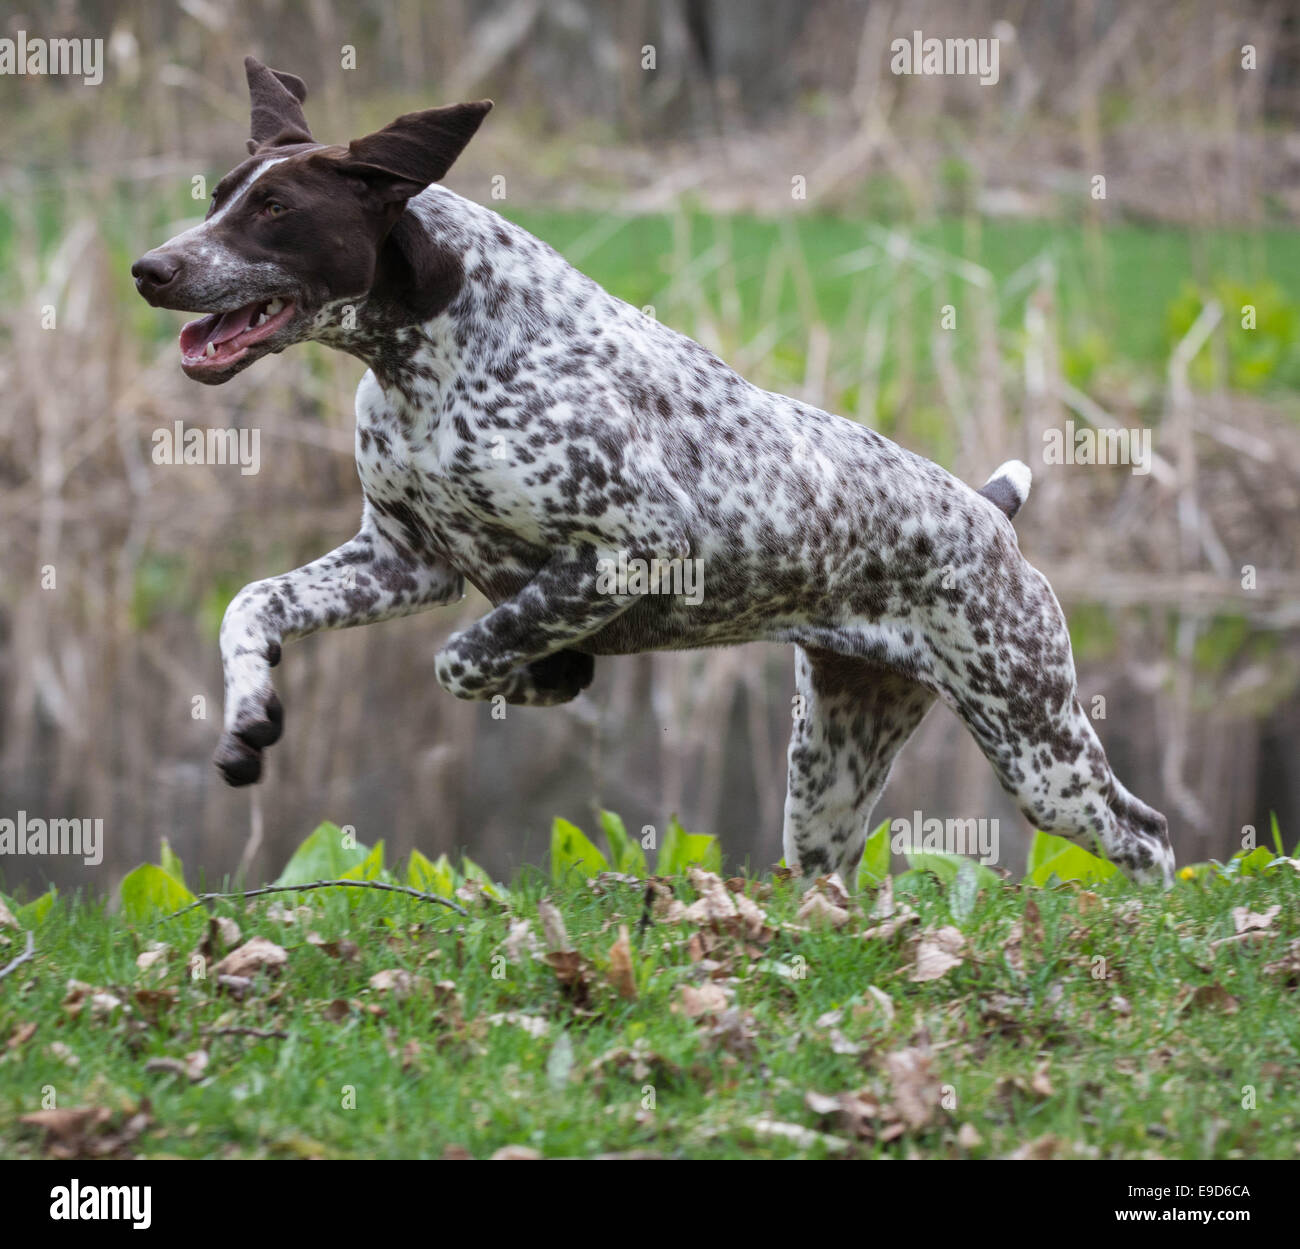 German Pointer Stock Photos & German Pointer Stock Images - Alamy